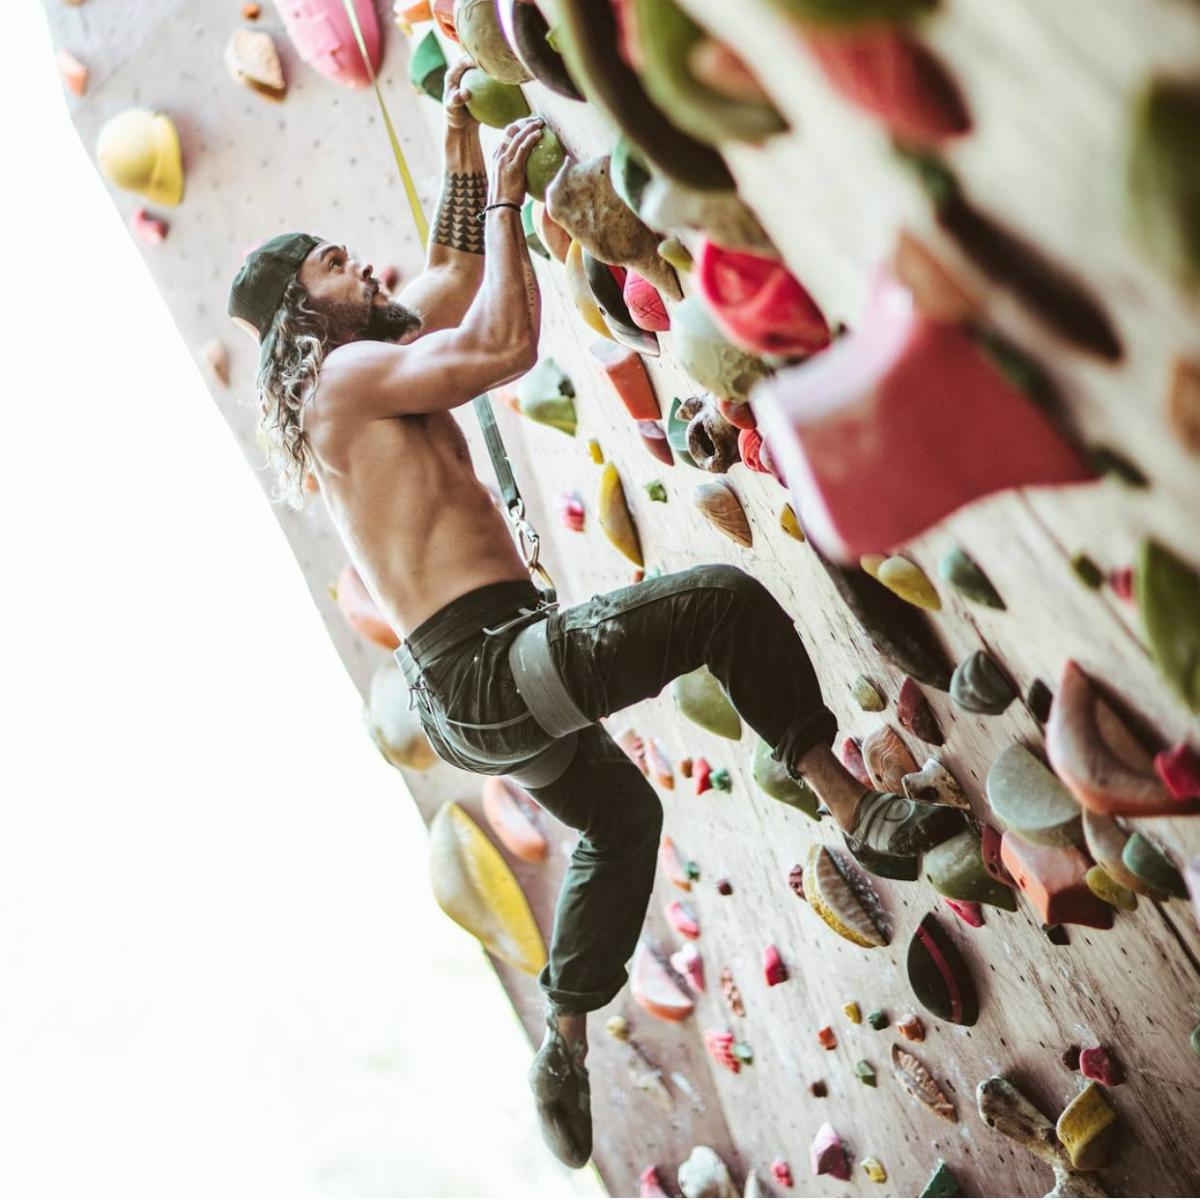 Jason Momoa Rock Climbing: Jason Momoa Rock Climbing Will Complete Your Day